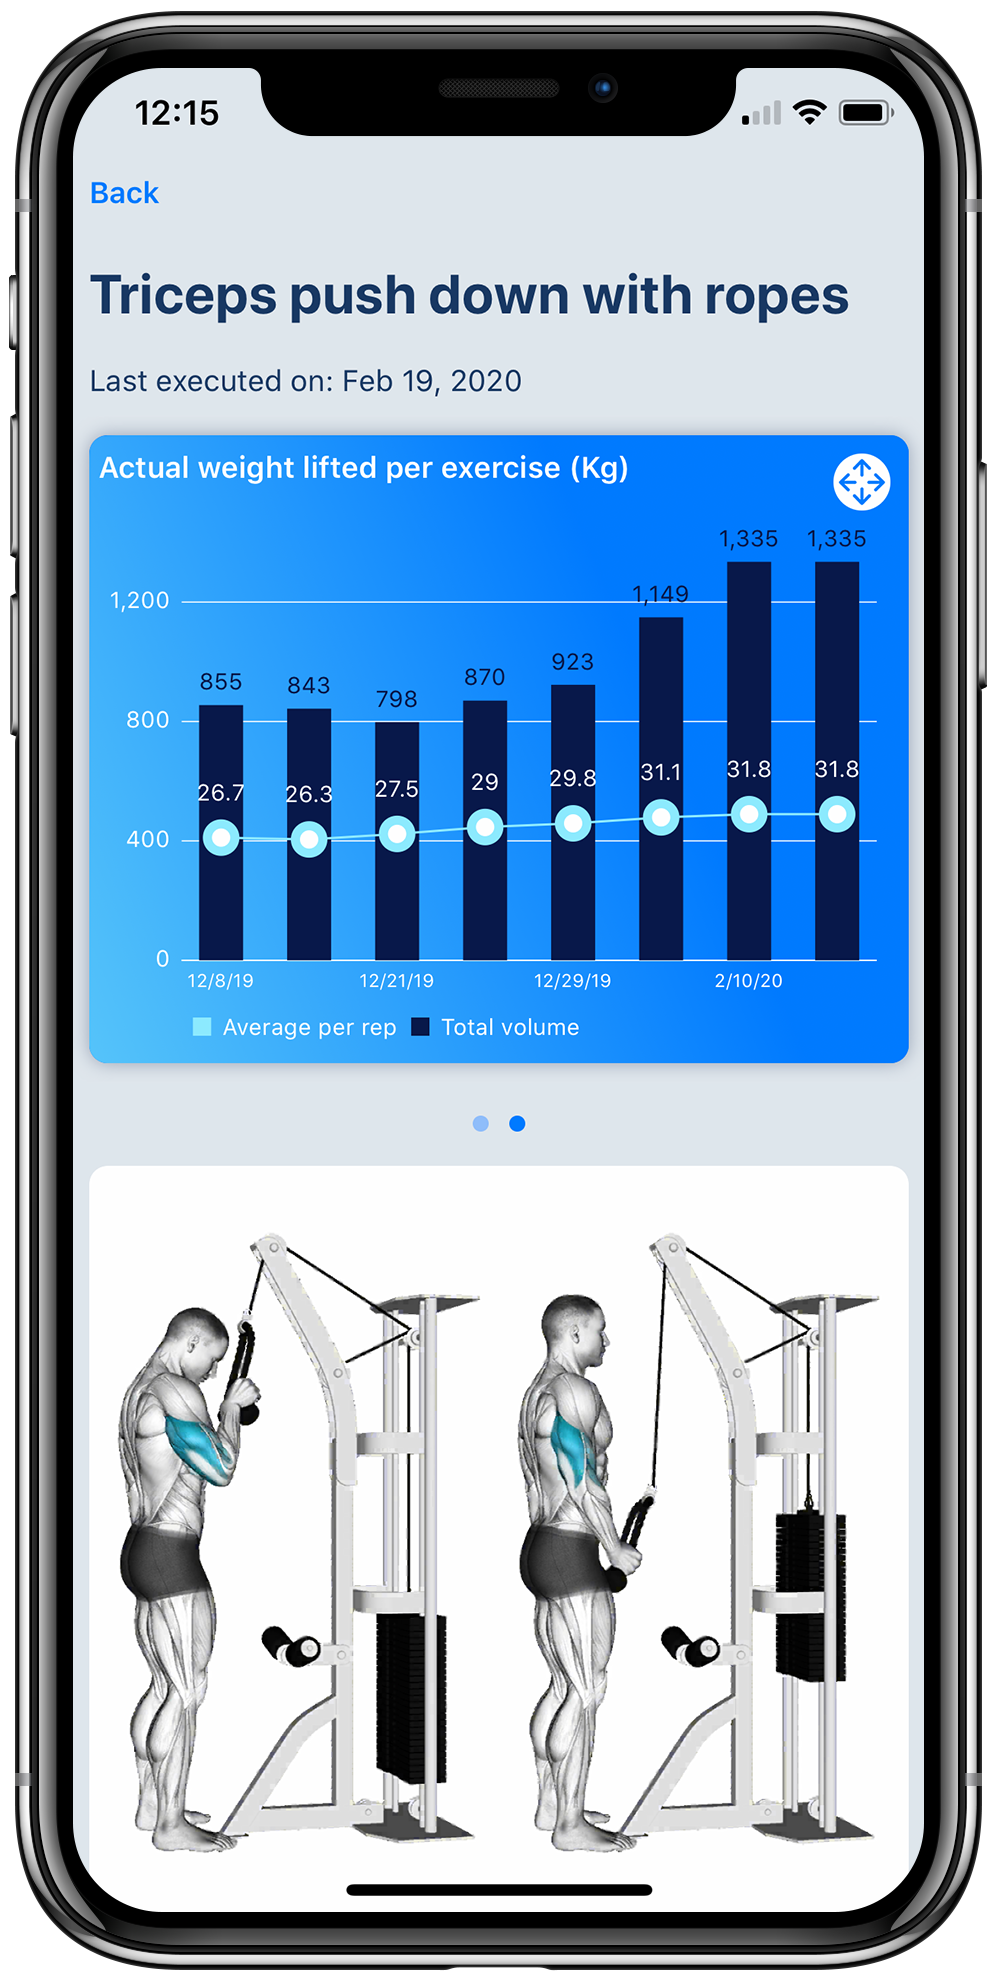 Workout tracker app on iPhone displaying a bench press exercise including progress